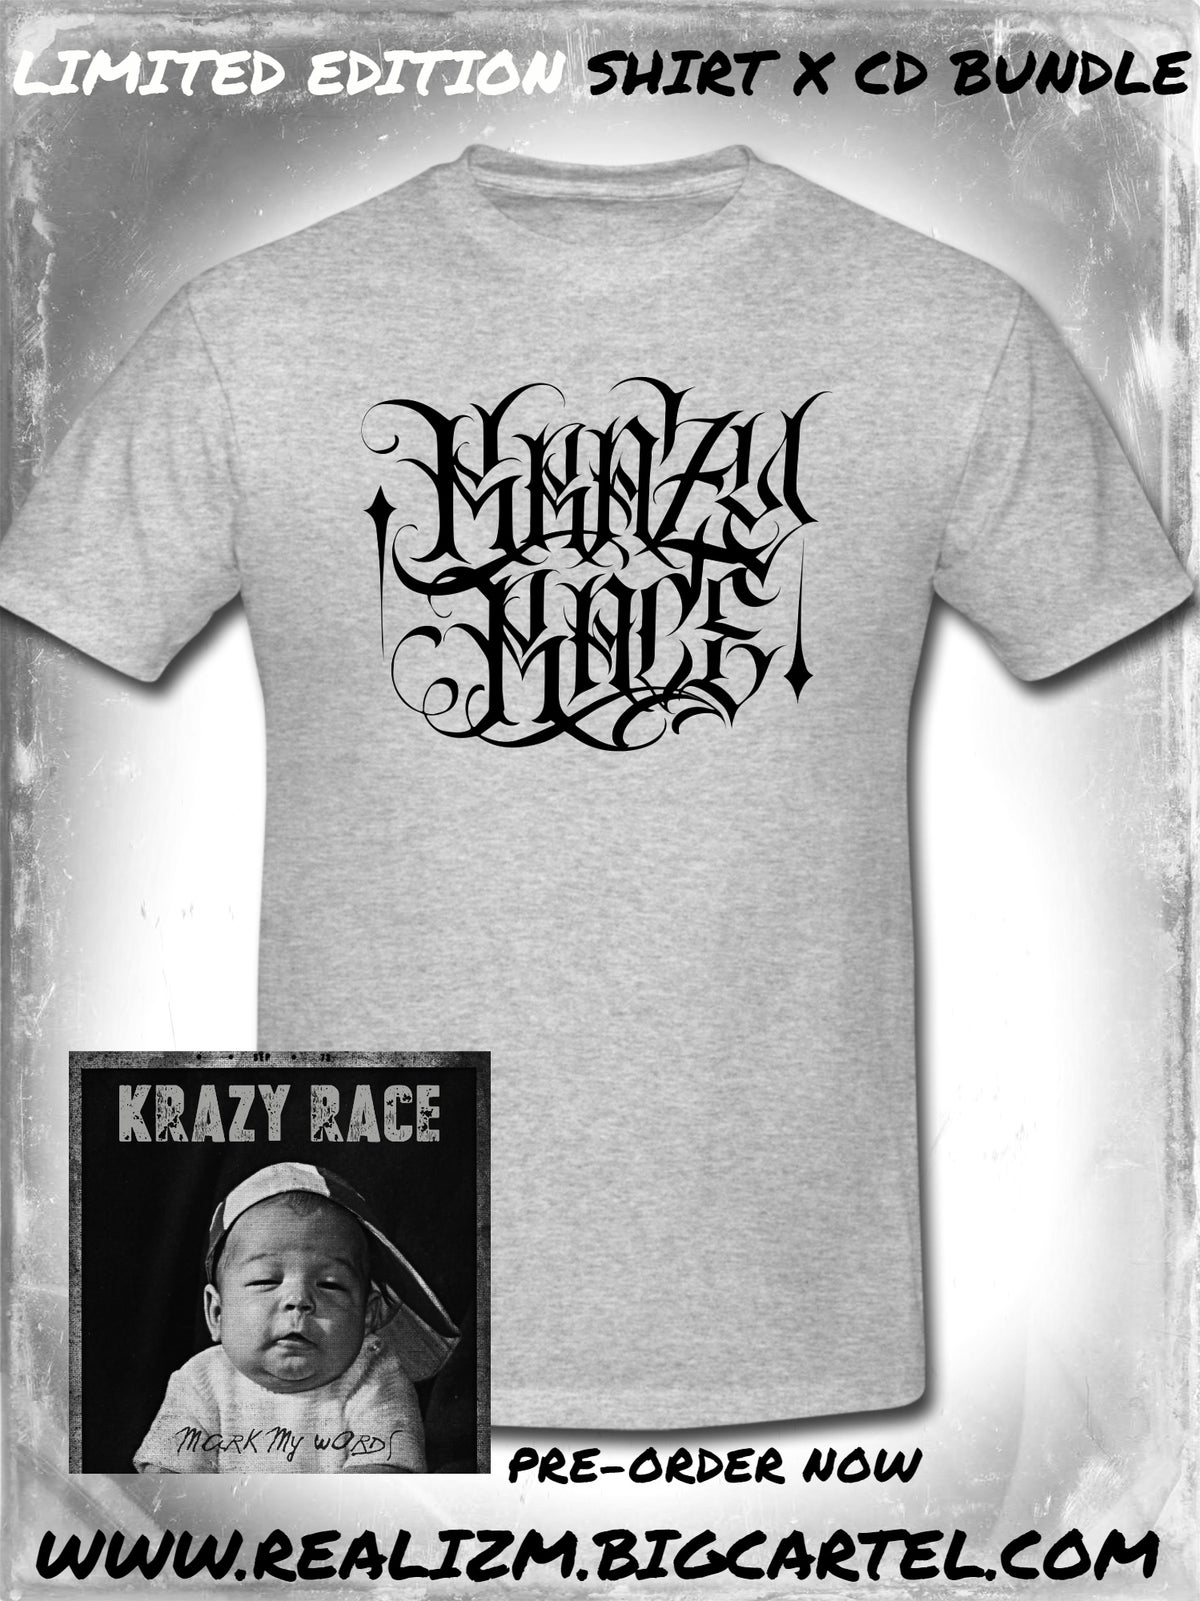 Image of Limited Shirt & New Krazy Race CD Bundle